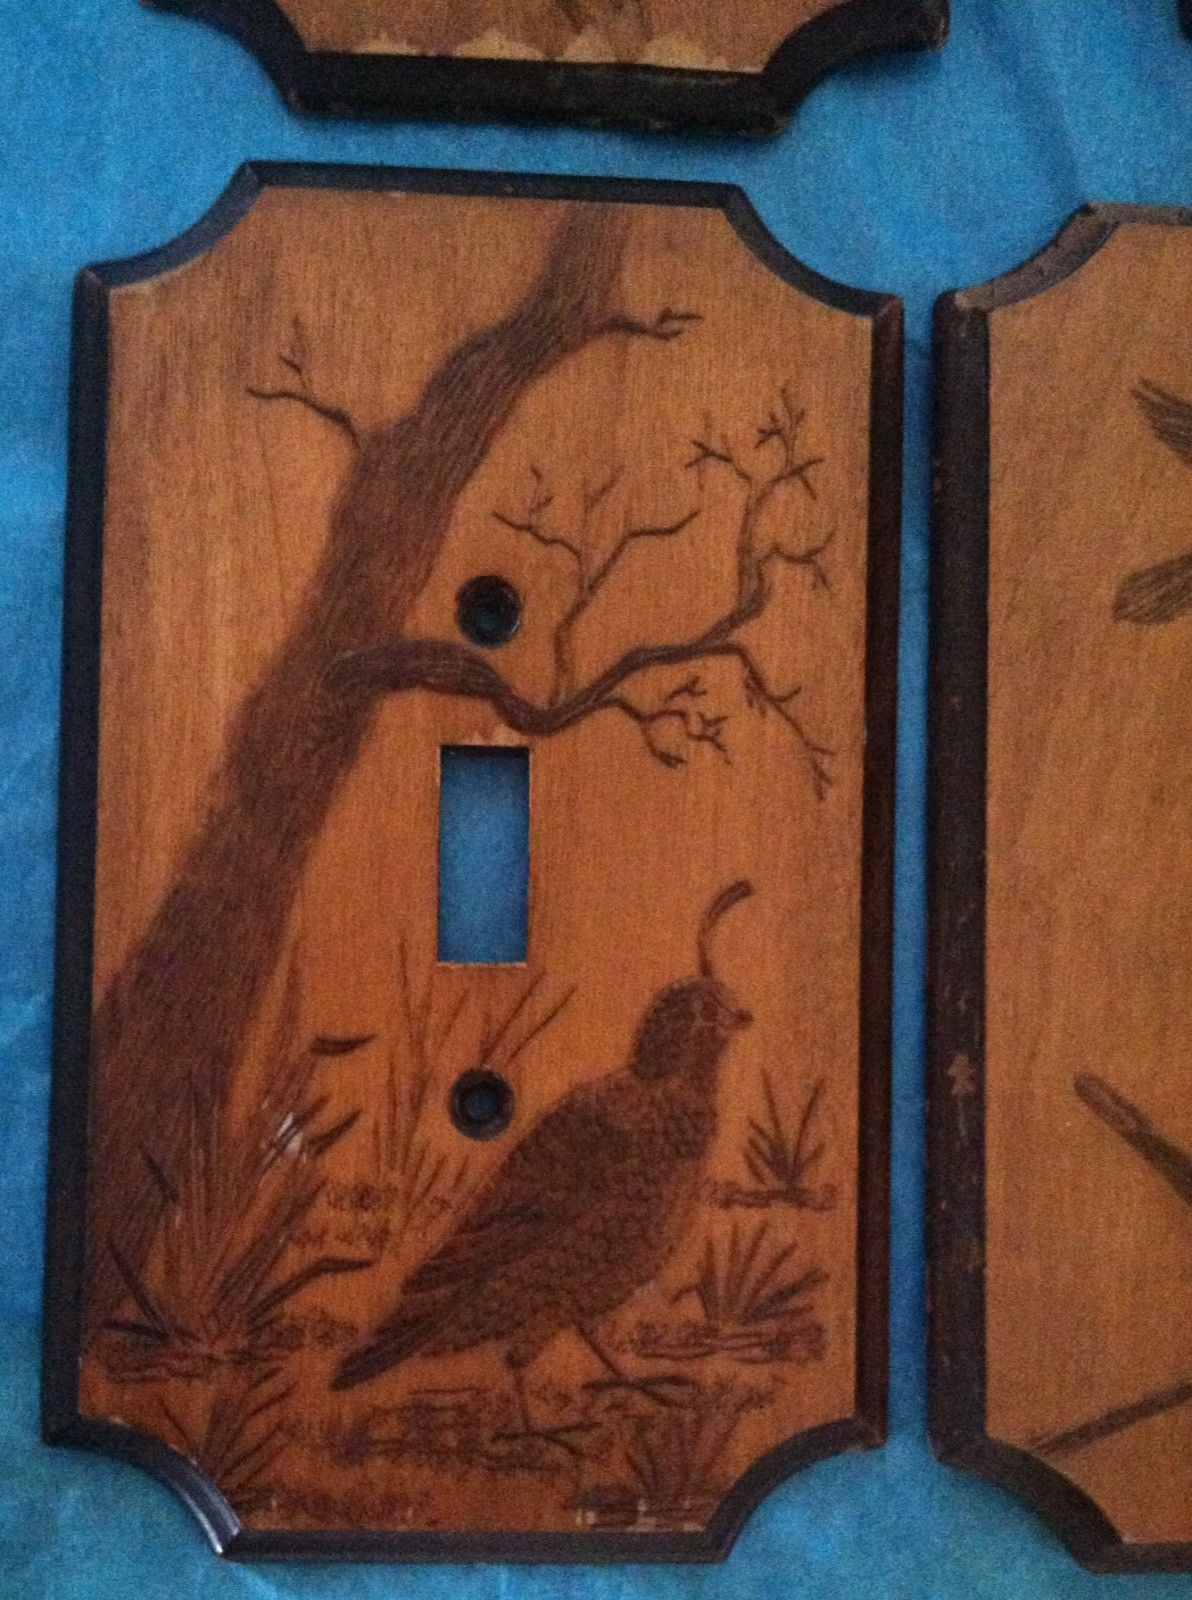 4 WOOD LIGHT SWITCH PLATES BIRDS NATURE Detailed Wood